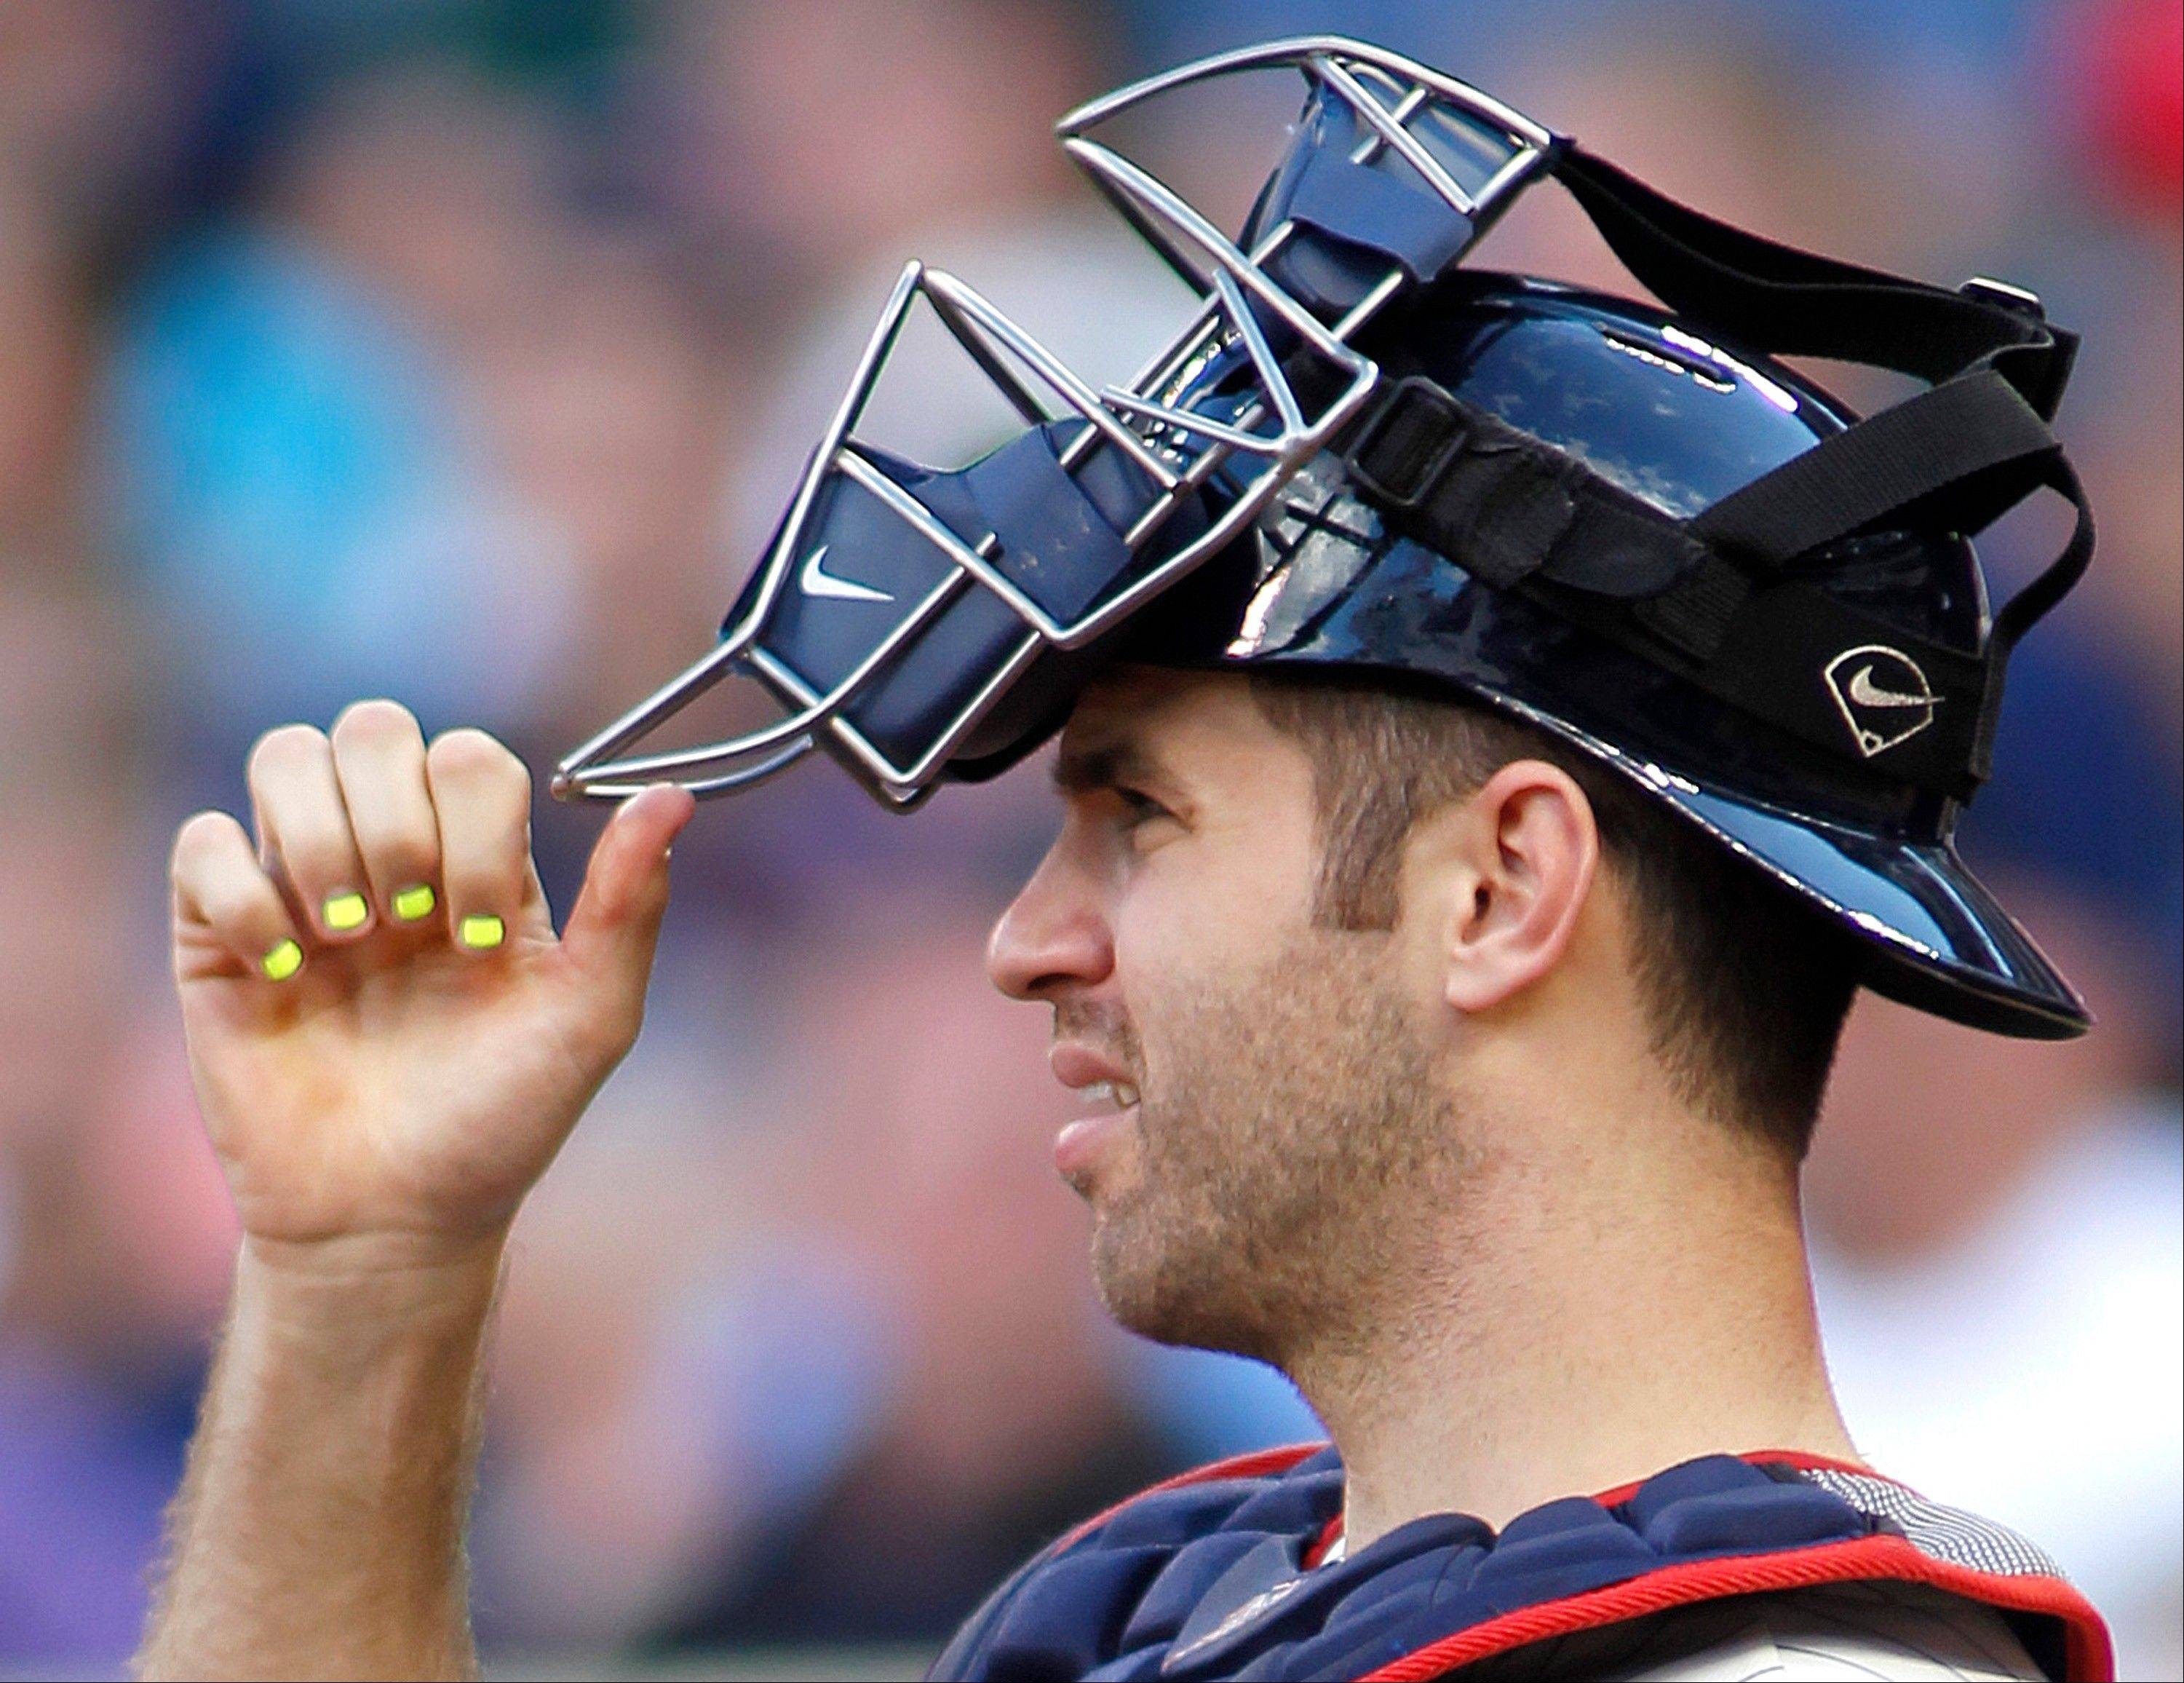 Minnesota's Joe Mauer, with highlighter coloring his fingernails to show signs to the pitcher, won three Gold Gloves as a catcher.